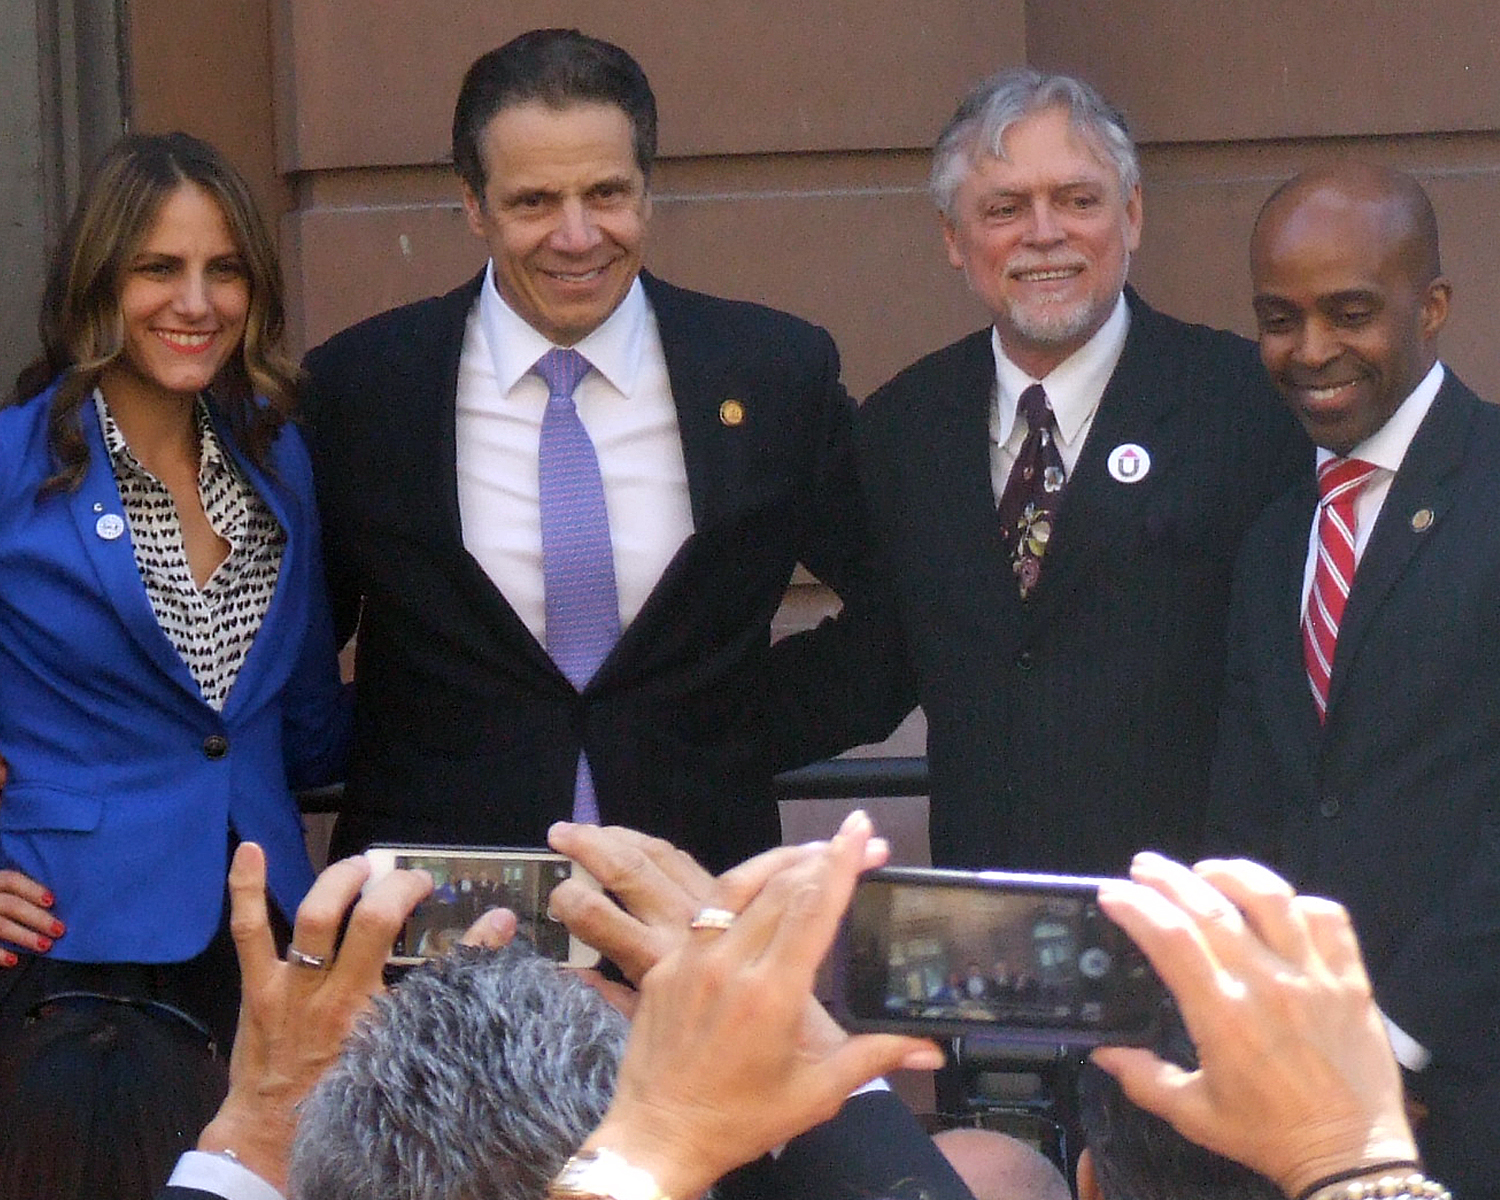 Governor Andrew Cuomo with other distinguished guests